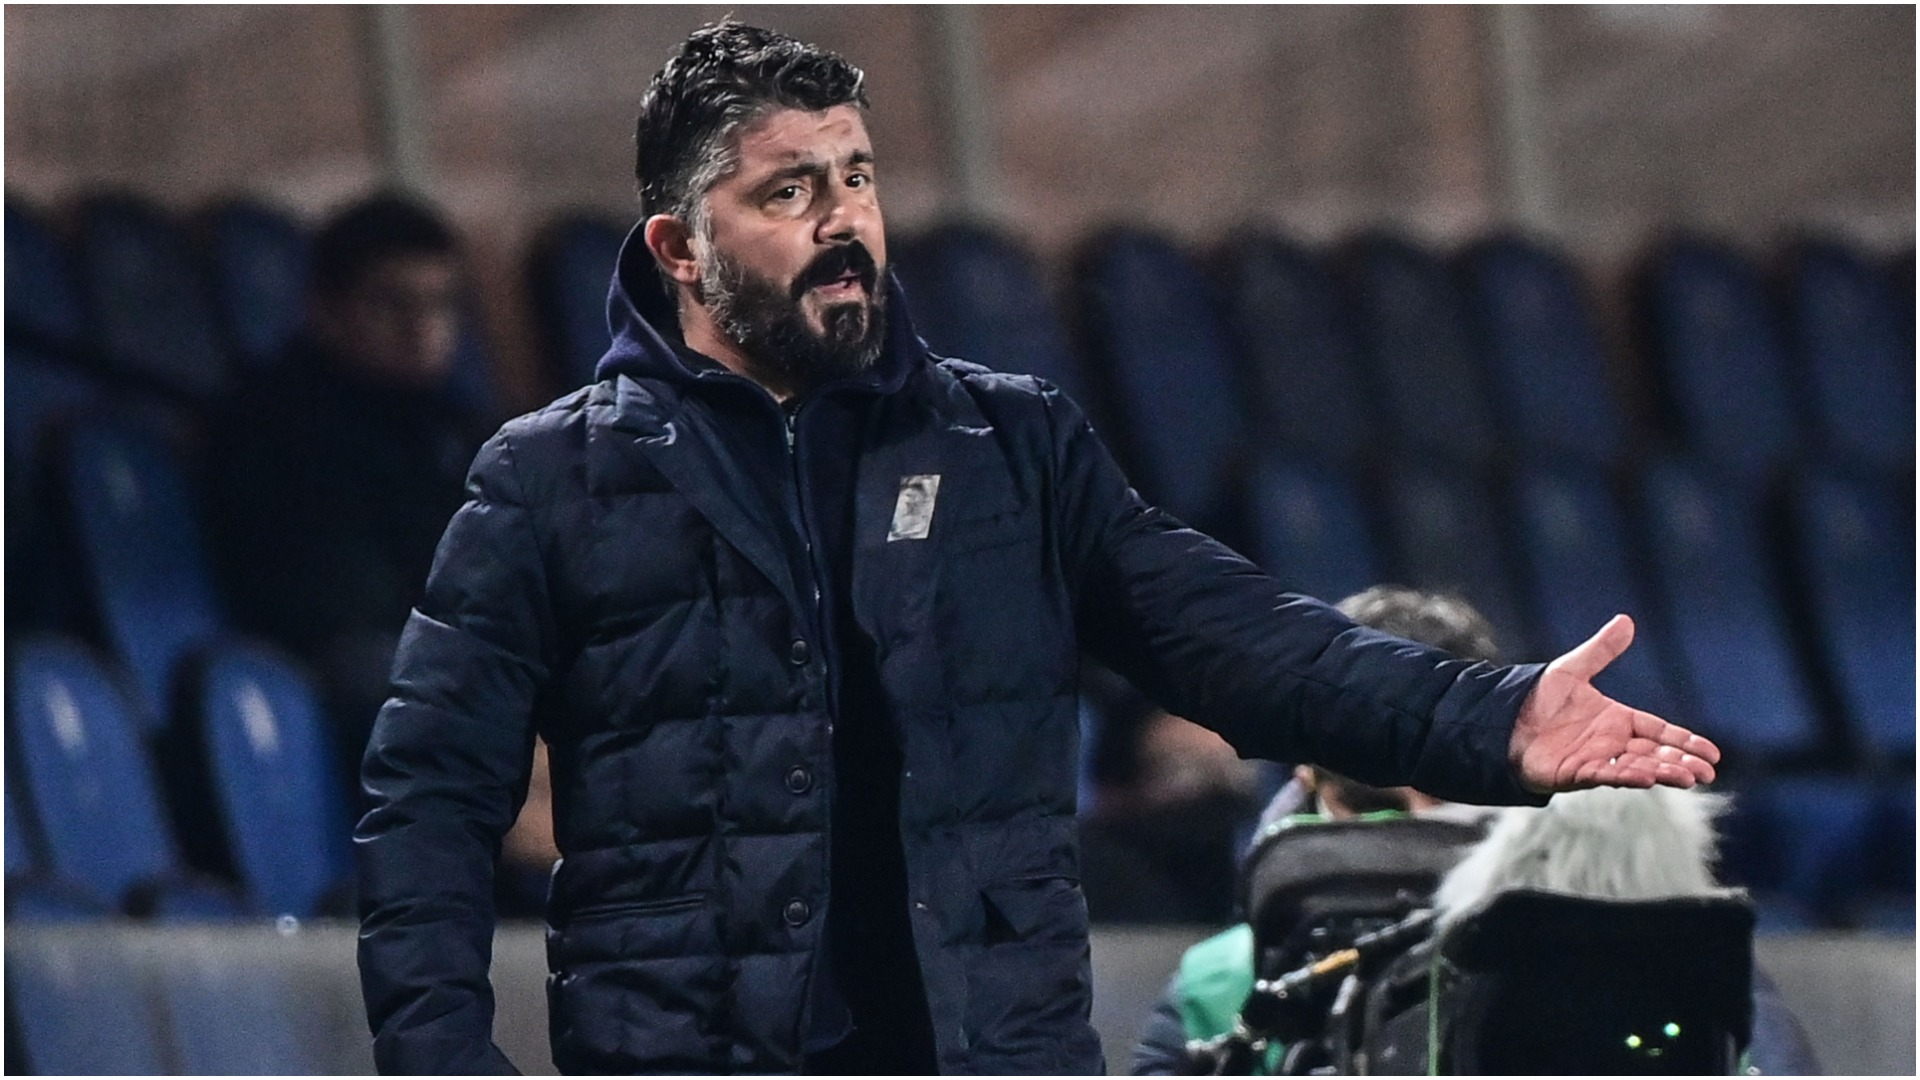 Ask the club – Napoli boss Gattuso unsure if Juventus clash is make or break